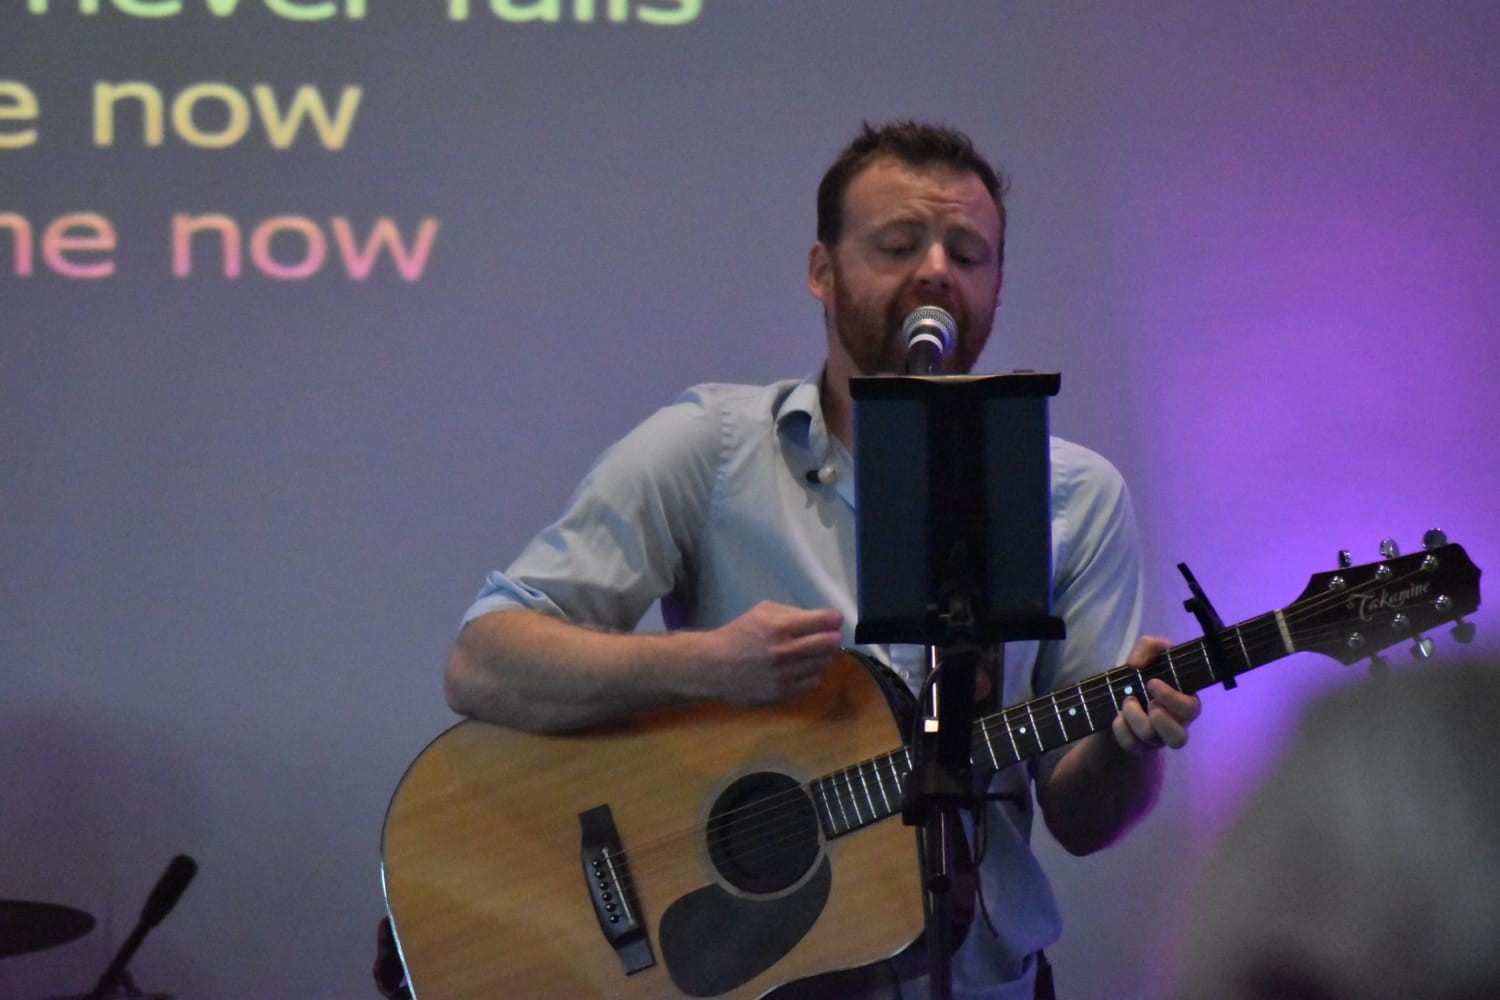 Scott Leading worship